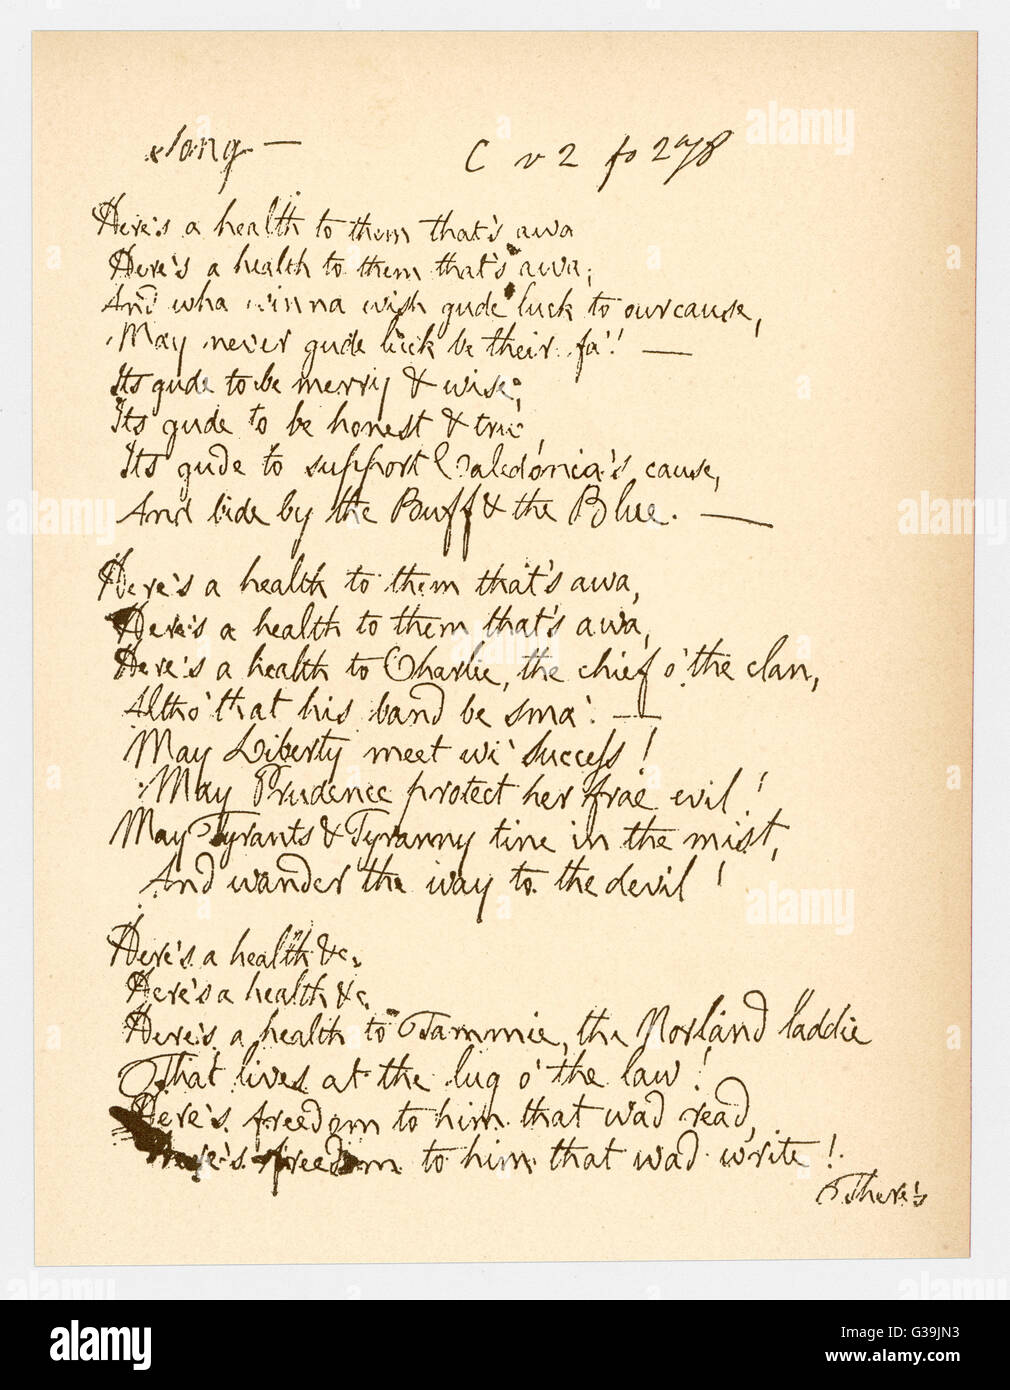 A poem by Robert Burns, giving  a good example of his  handwriting. - Stock Image